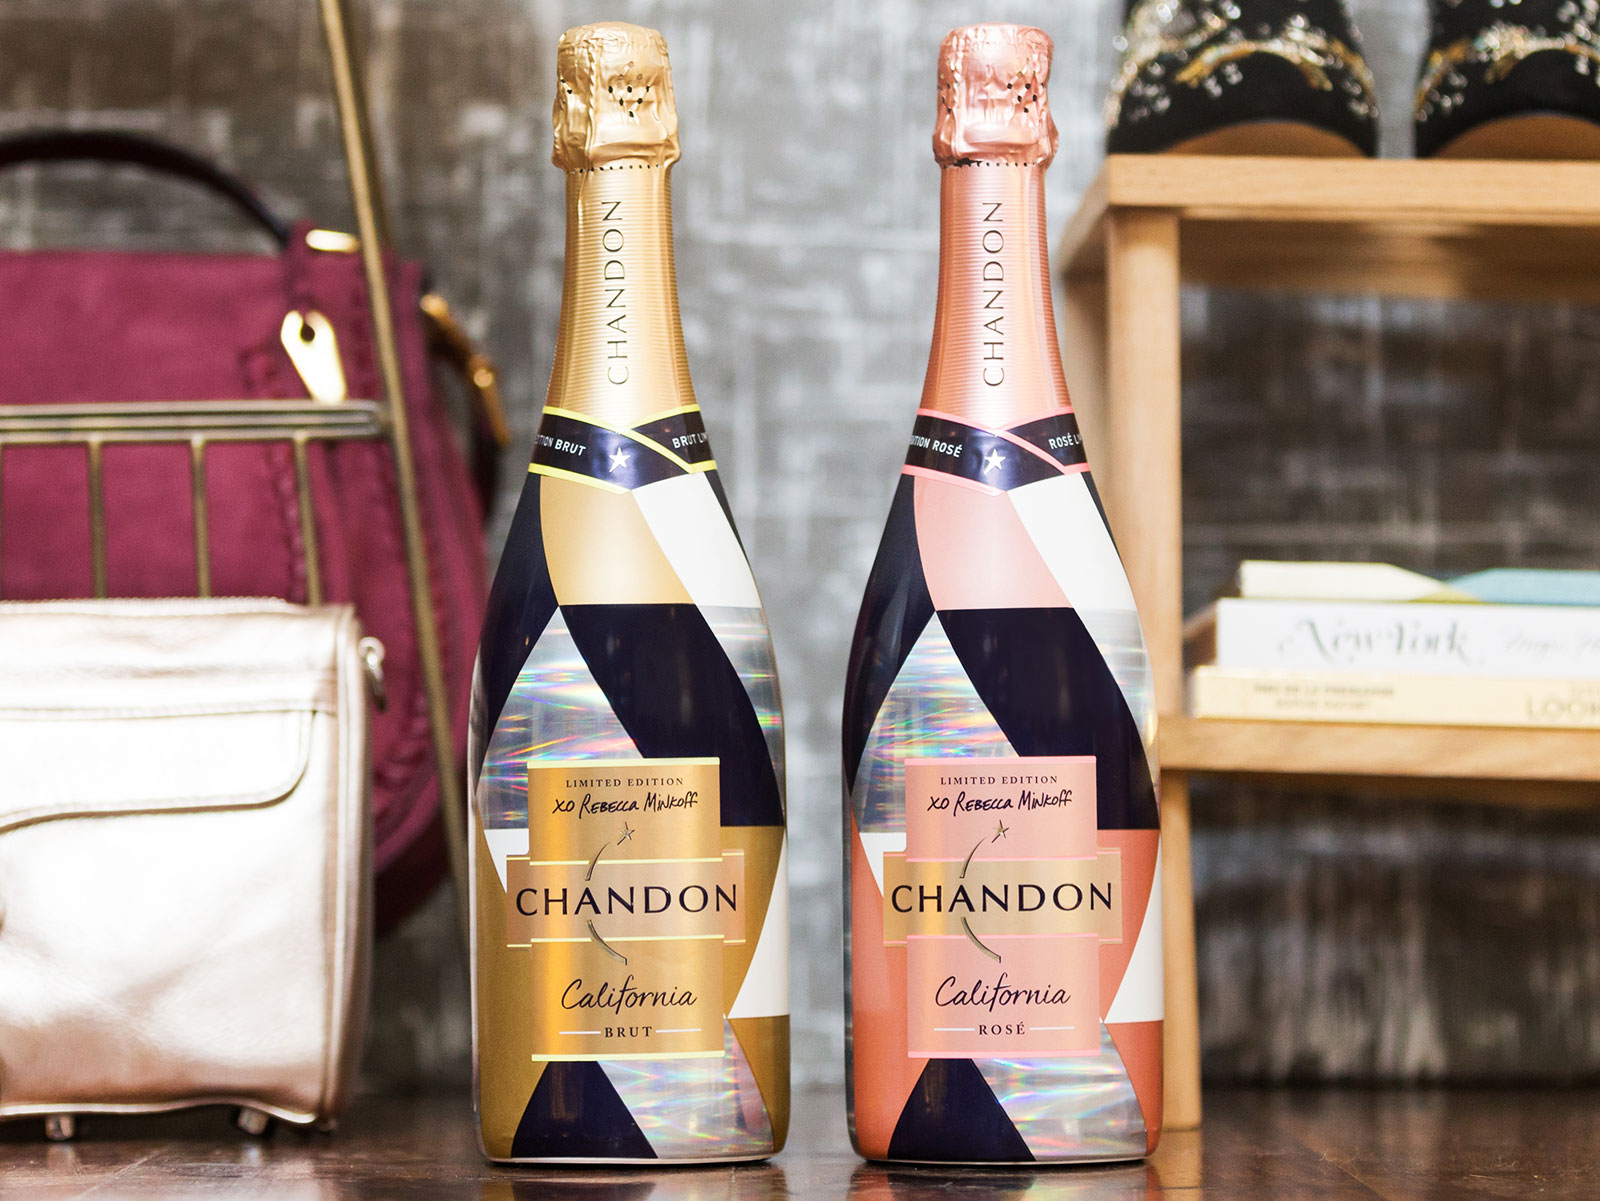 Chandon California Winter Collection, Brut